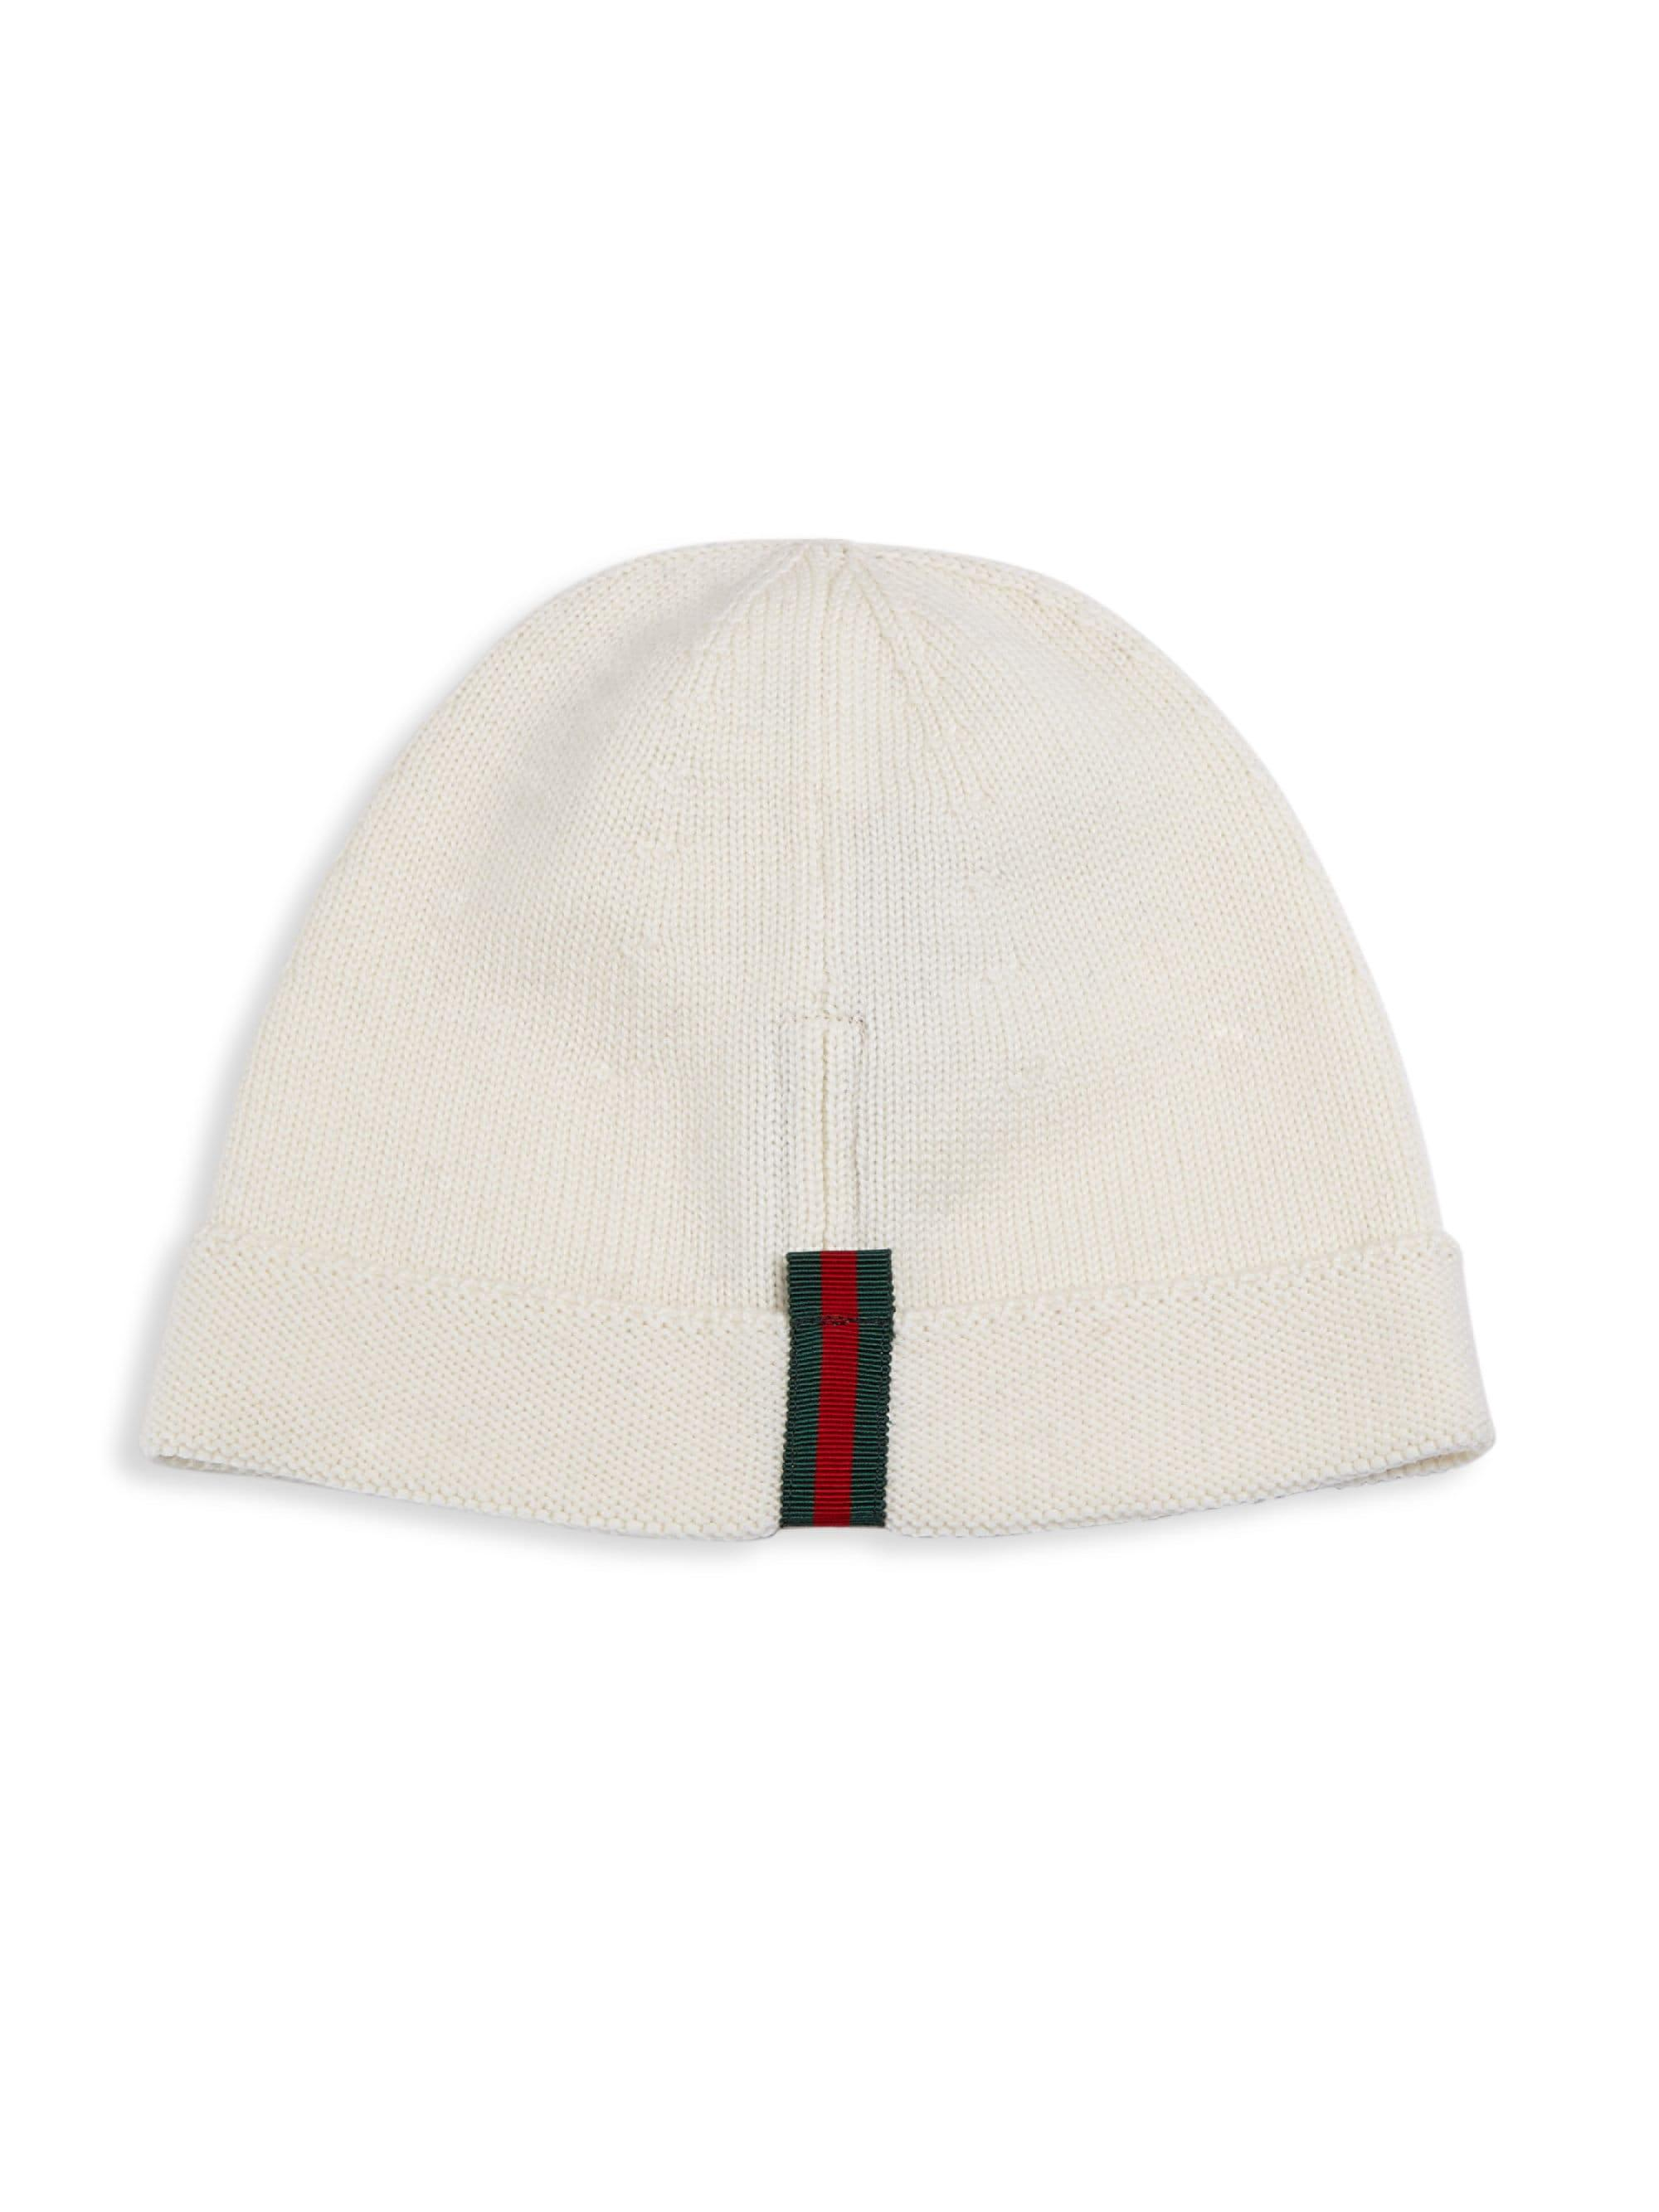 d2cb687580d30 Gucci Striped Beanie in White for Men - Lyst